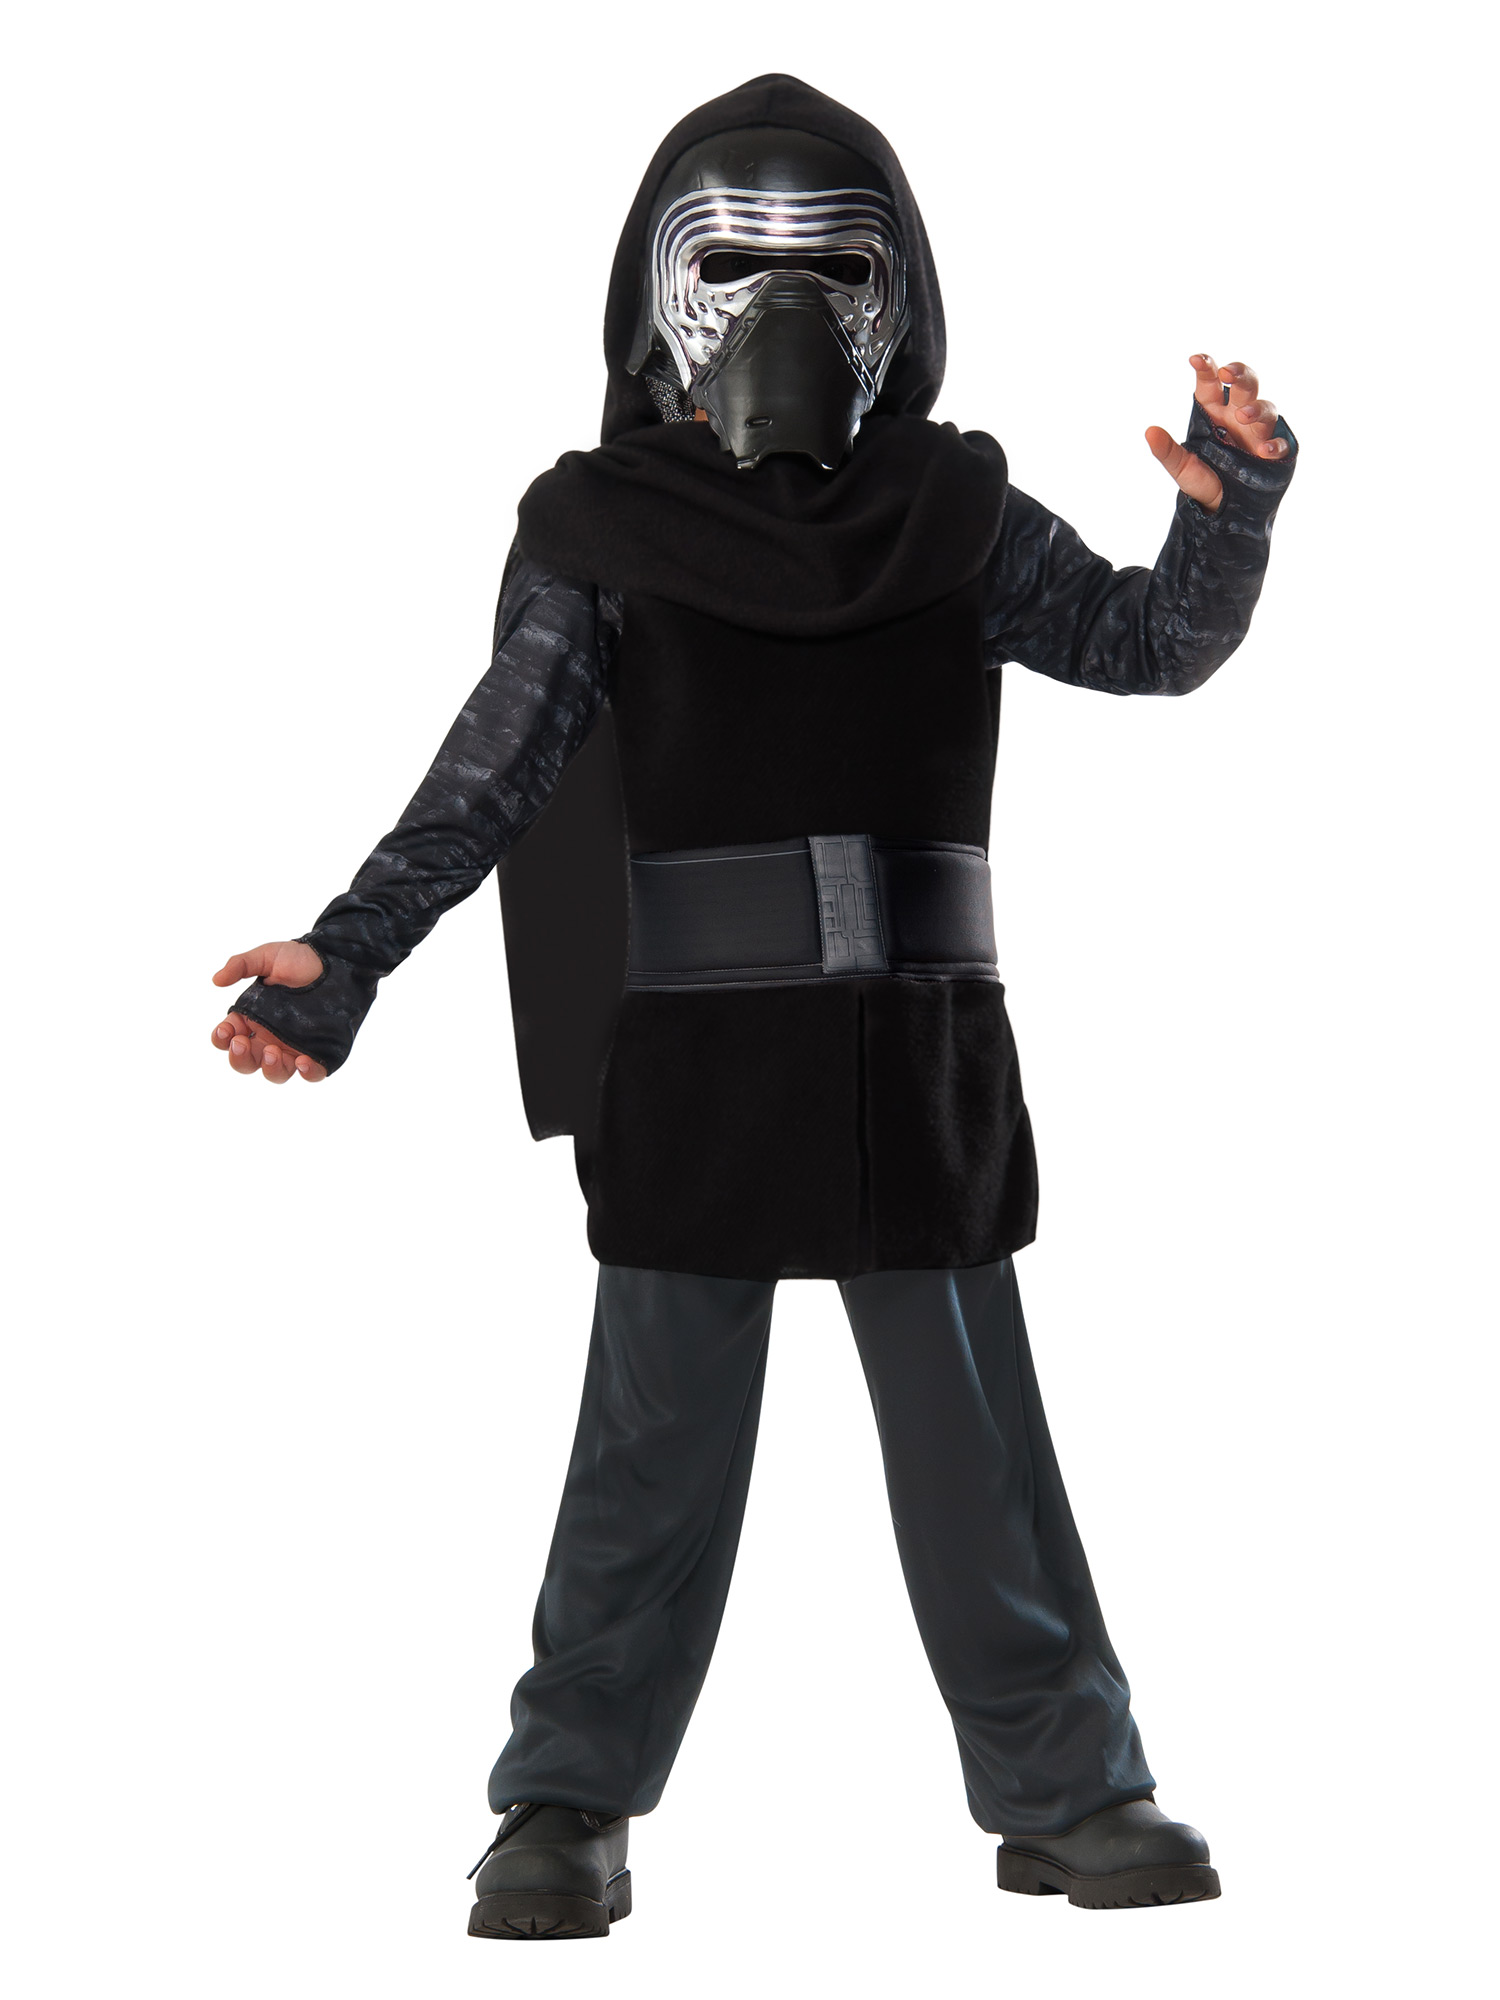 Star Wars Episode VII: The Force Awakens Kylo Ren Action Suit Costume for Kids G31641IBR